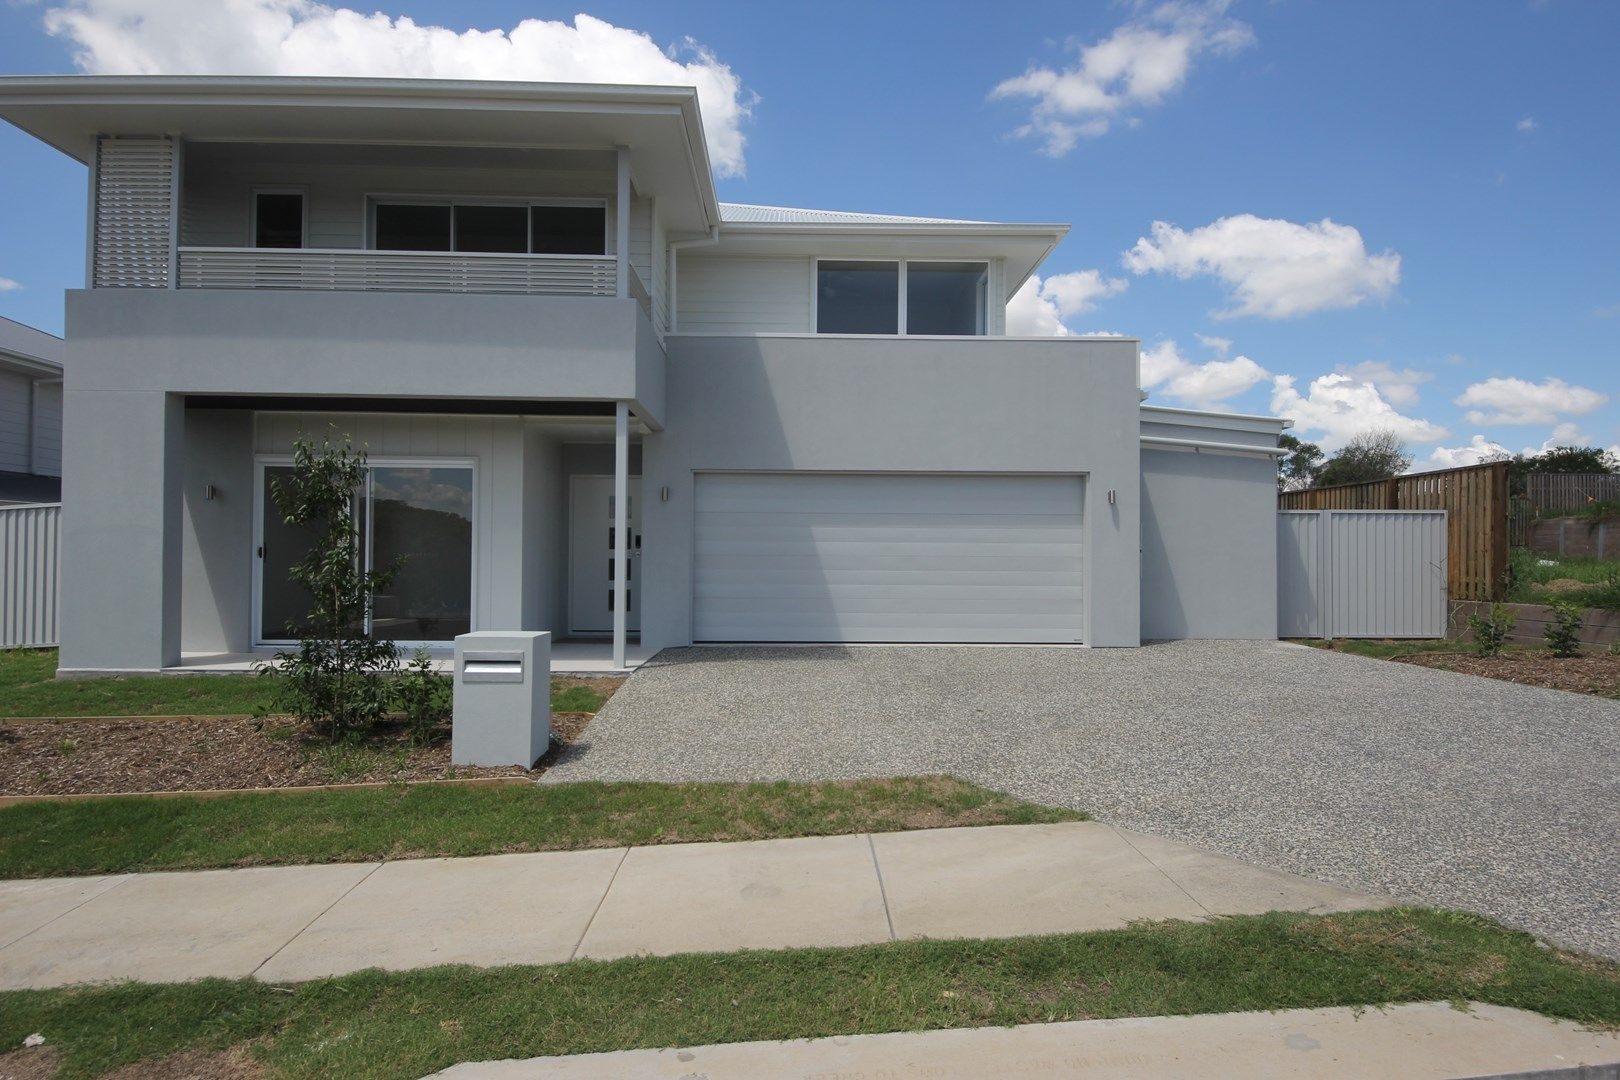 Lot 31 Stretton Heights, Stretton QLD 4116, Image 0